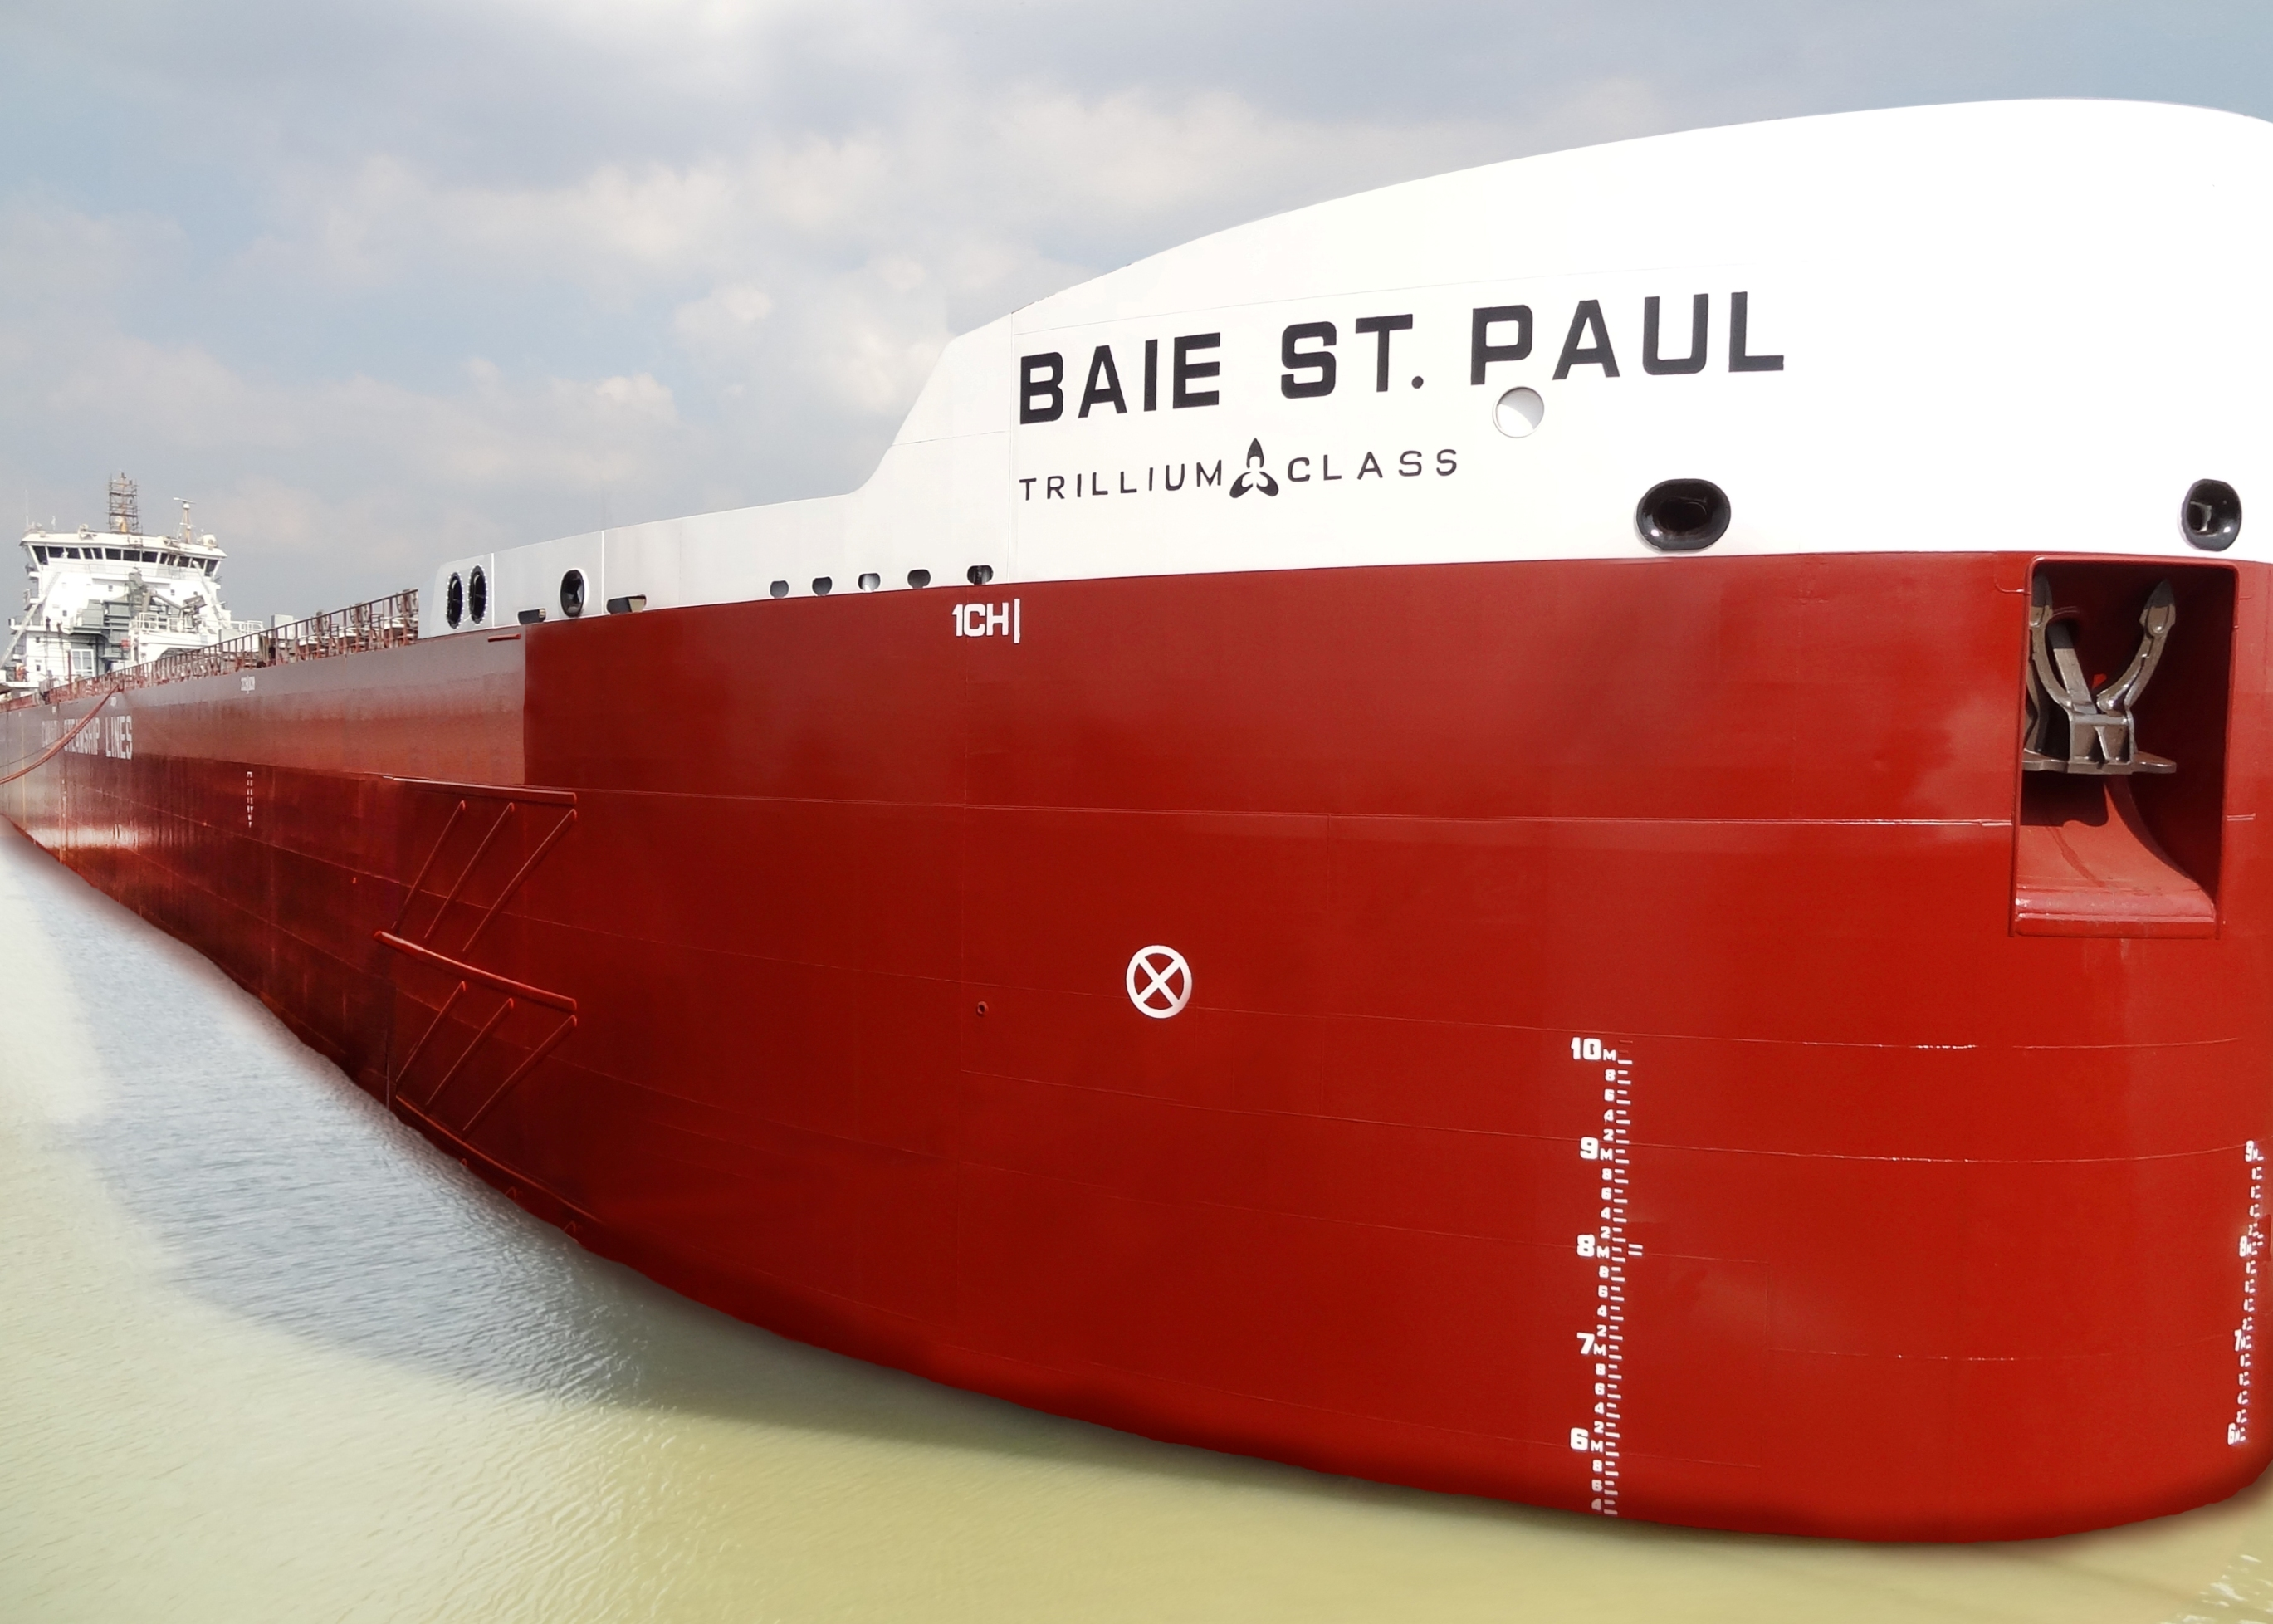 CSL has put a total of 11 newbuild Trillium Class vessels into operation since 2012